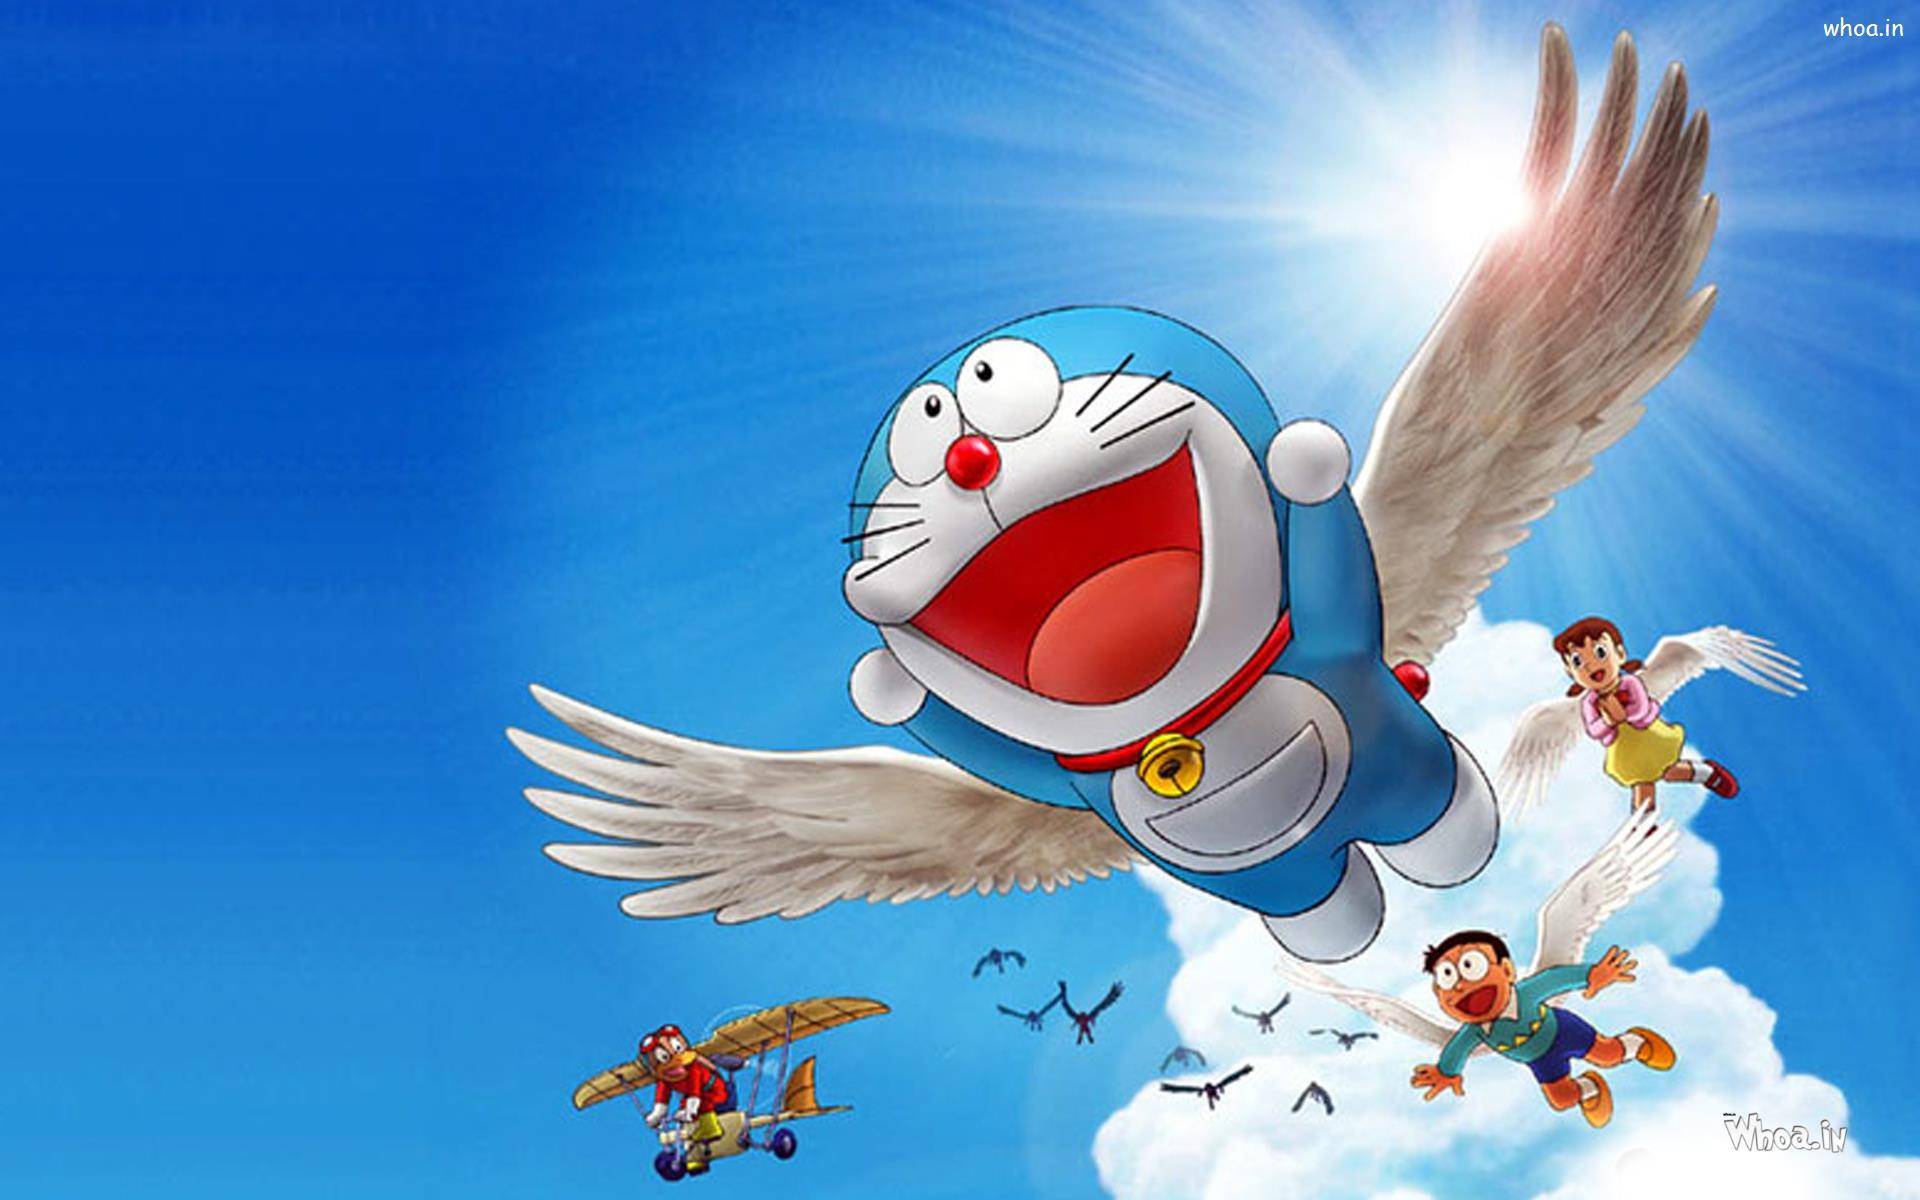 Doraemon Wallpapers Hd Wallpaper Cave